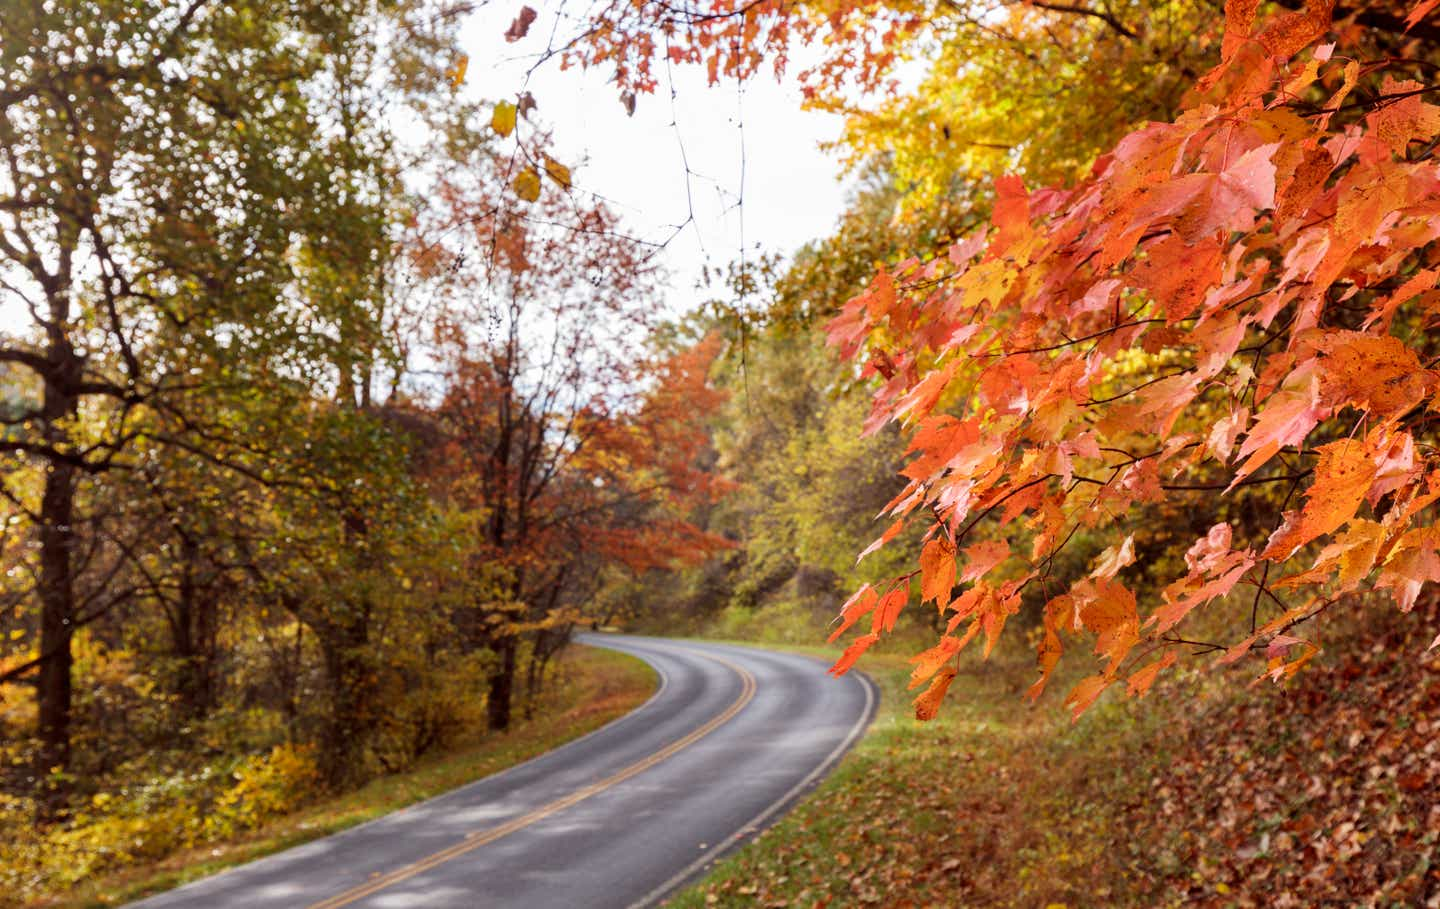 Orange and yellow fall leaves surrounding the roadway at Shenandoah National Park